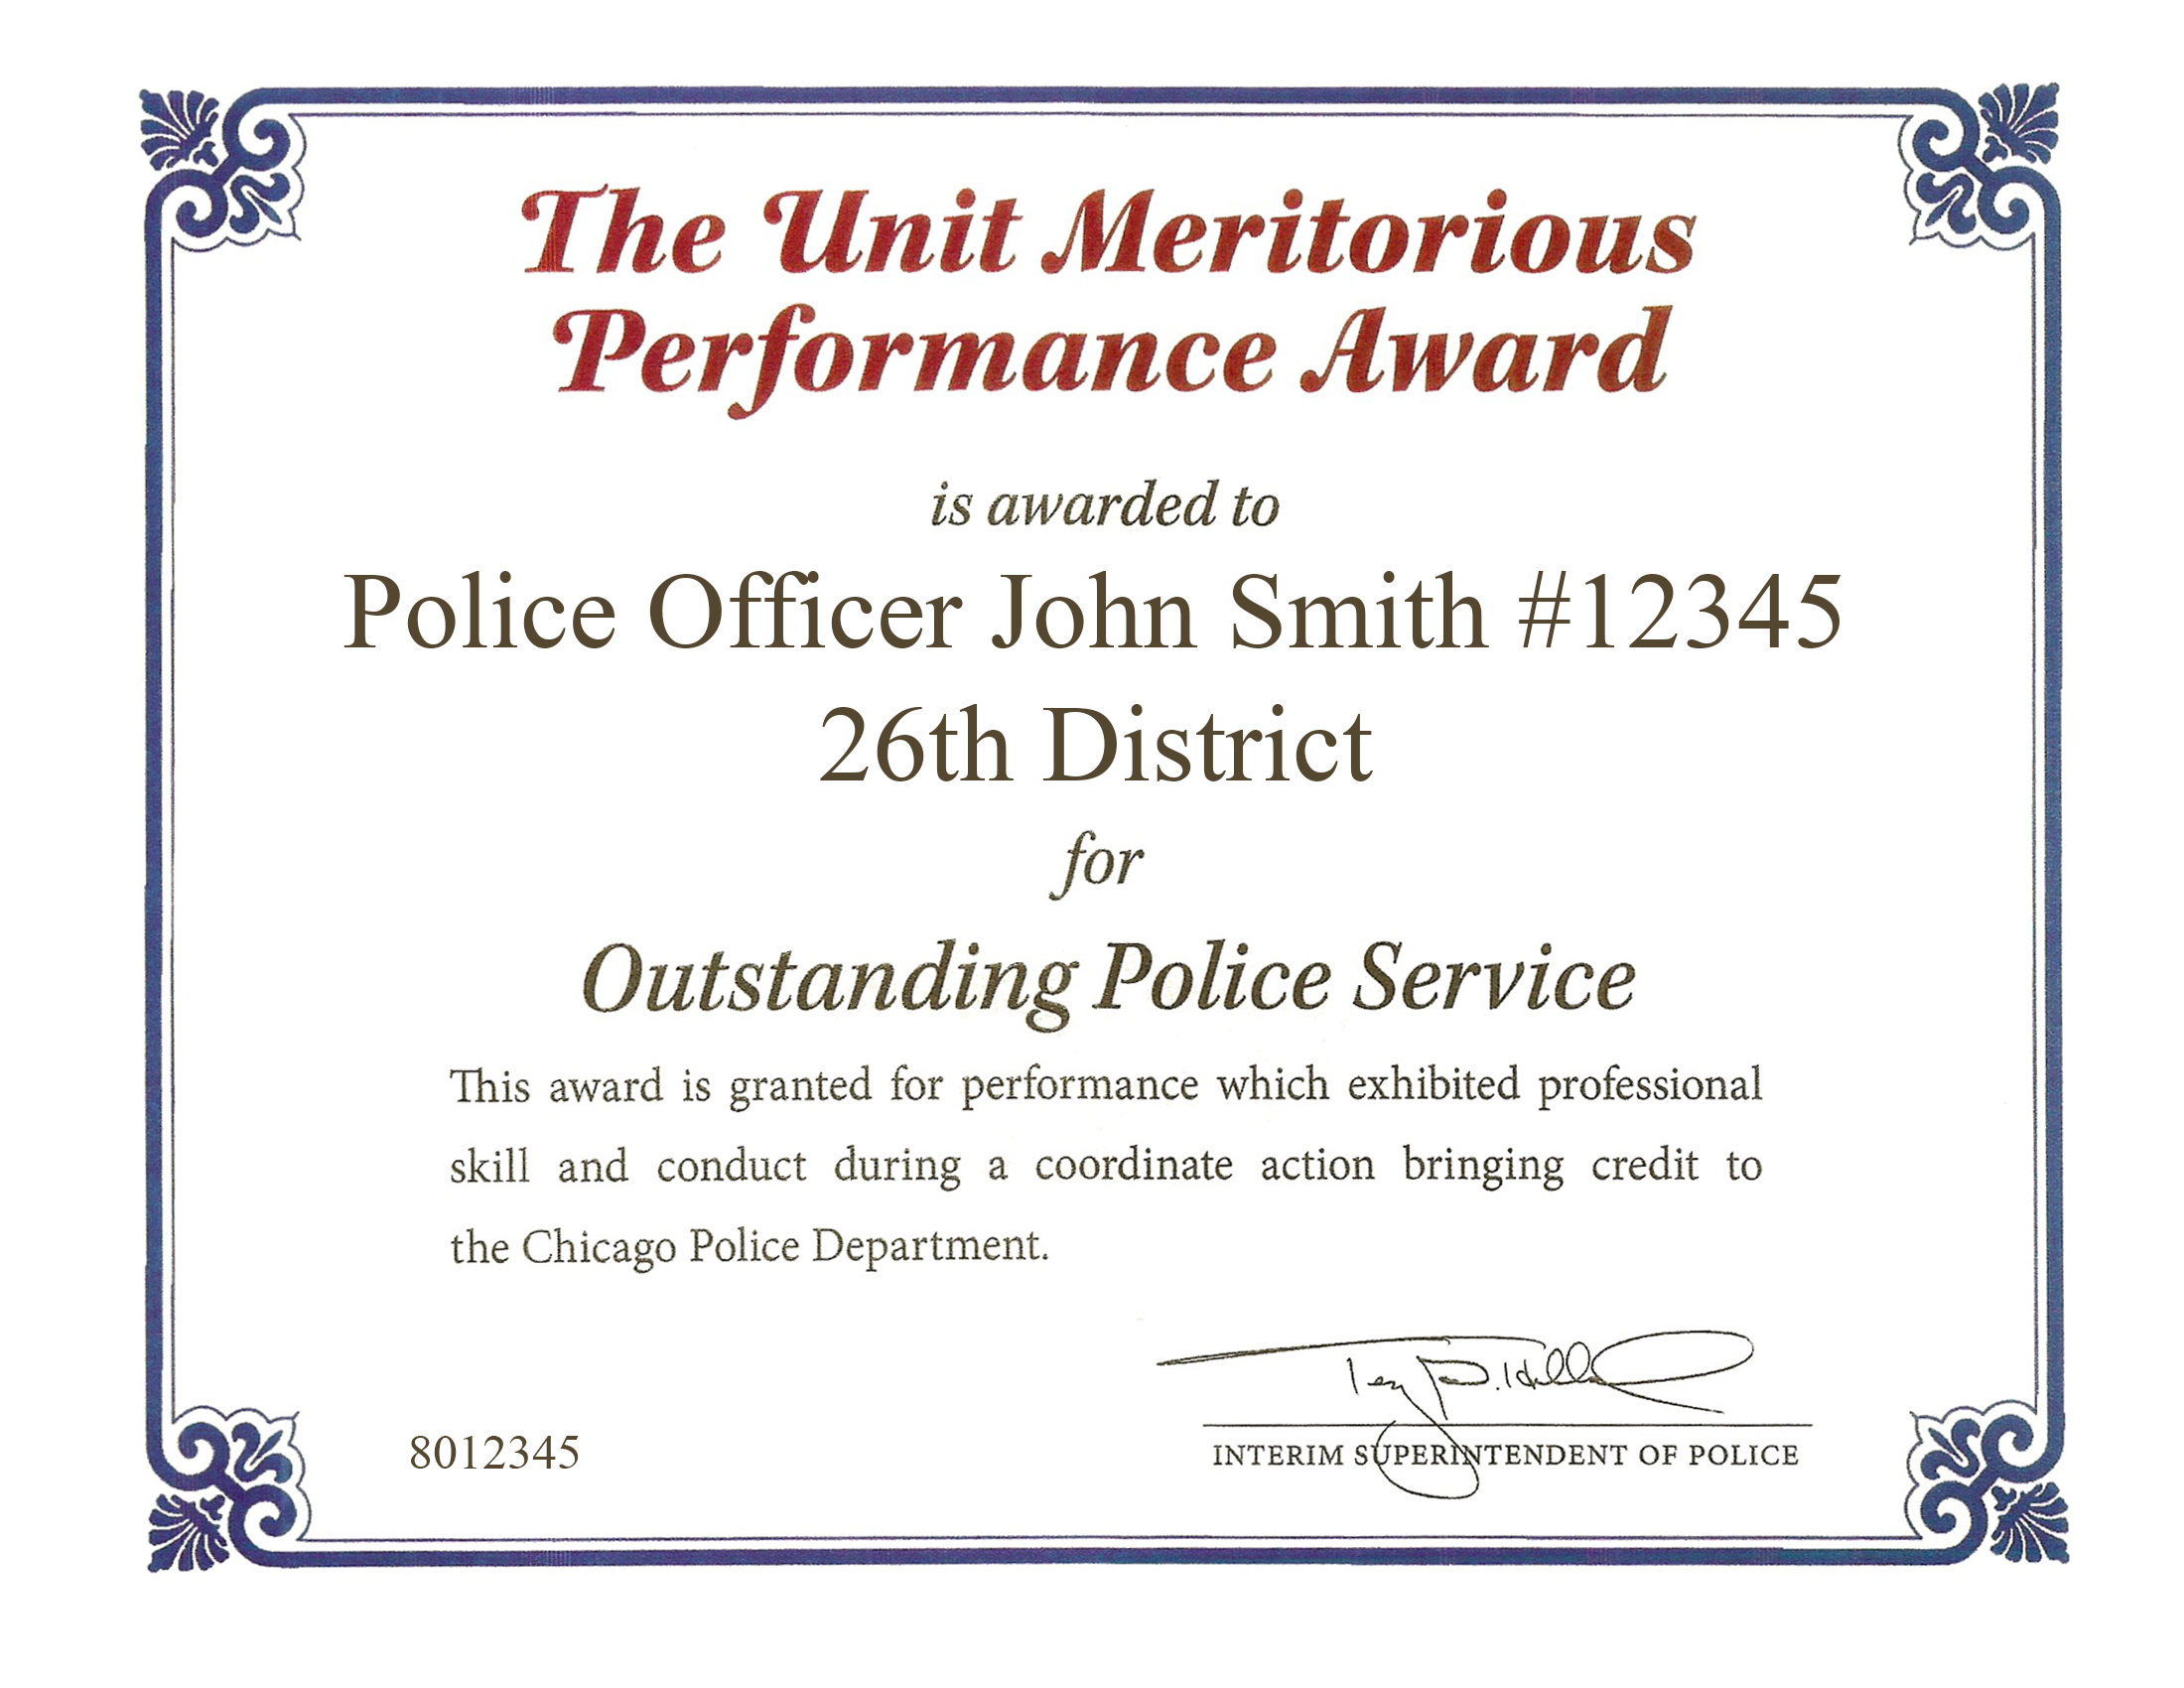 Unit Meritorious Performance Award Certificate